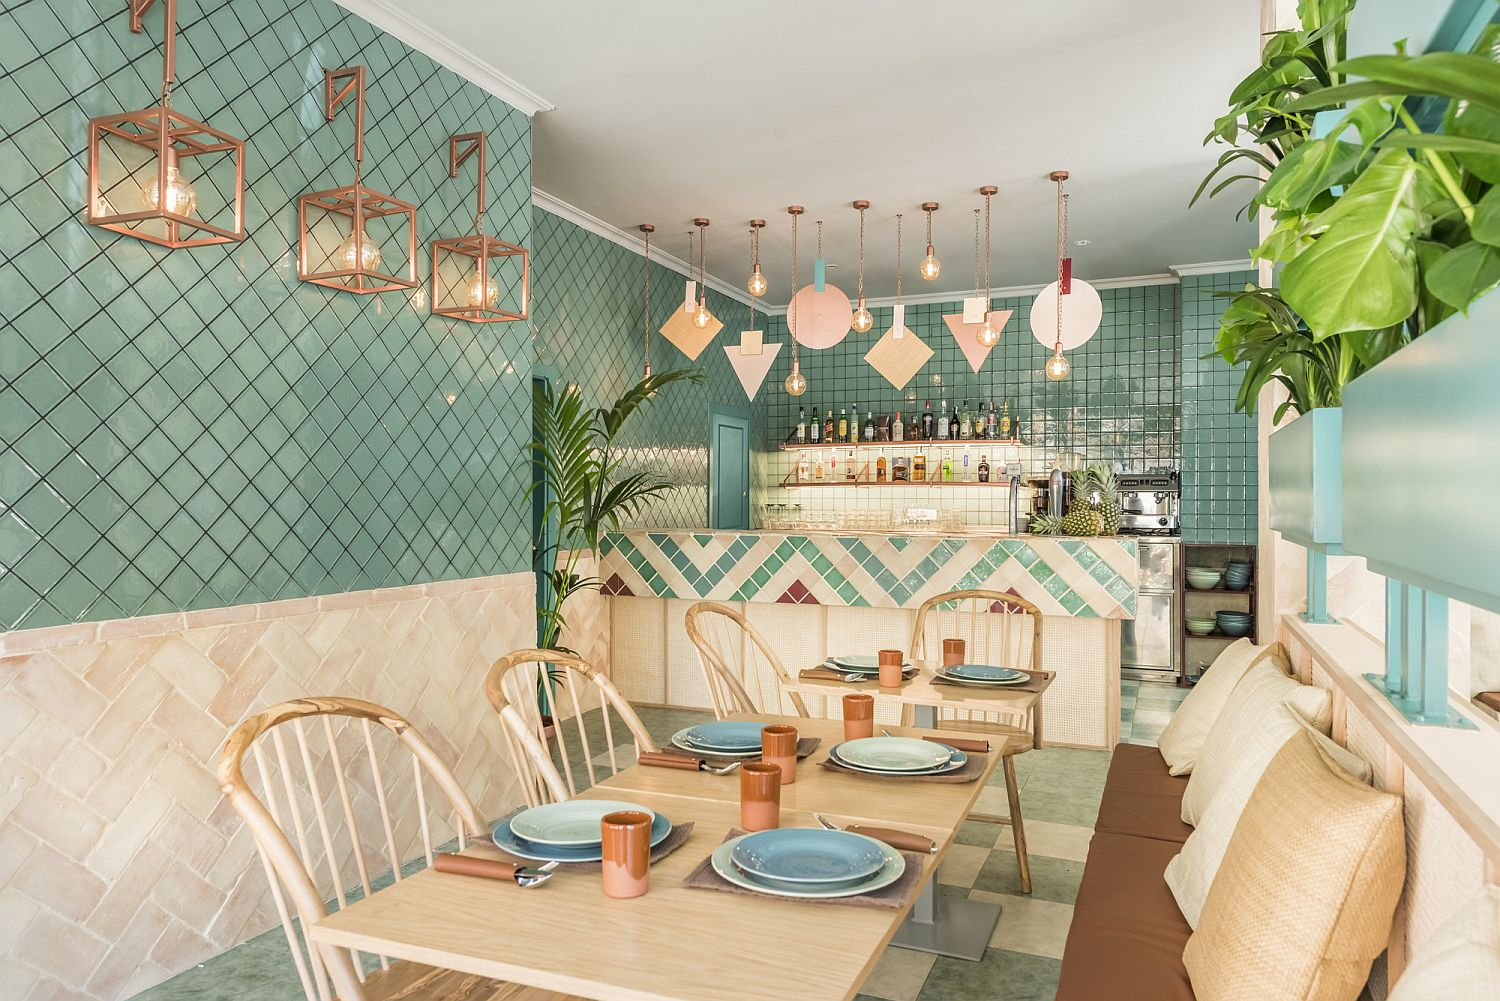 Creative pizzeria in Valencia full of color and personality Vivacious Splash of Color and Pattern: Revamped Pizzeria in Valencia